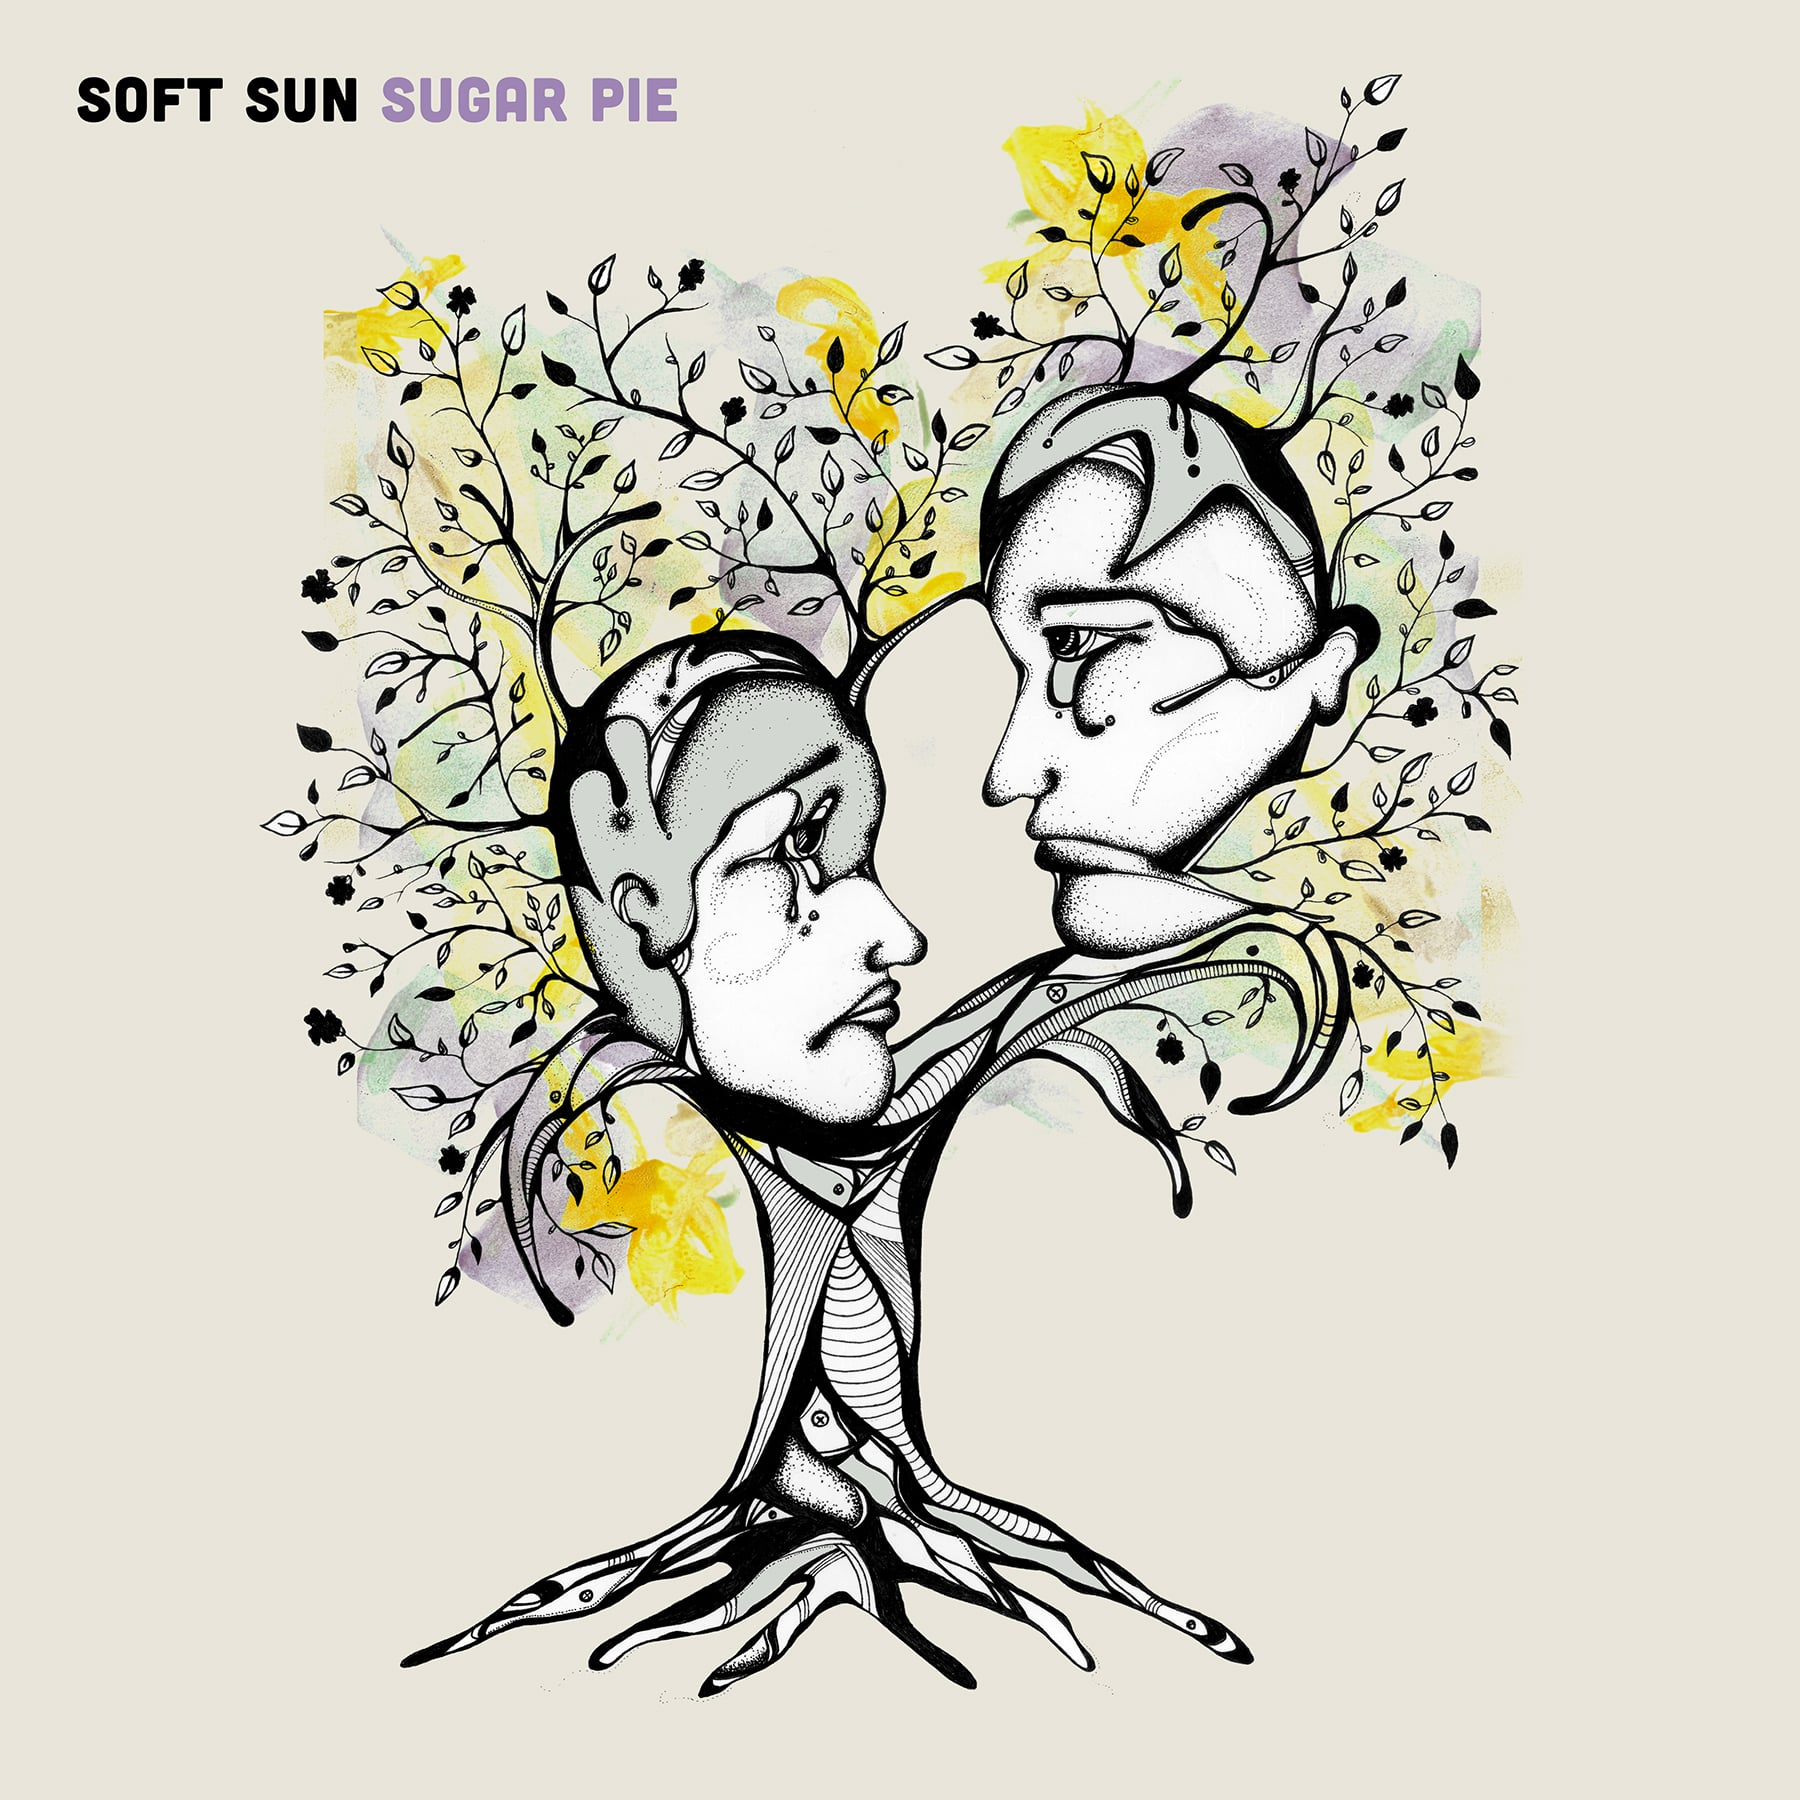 SoftSun-SugarPie-Cover.jpg